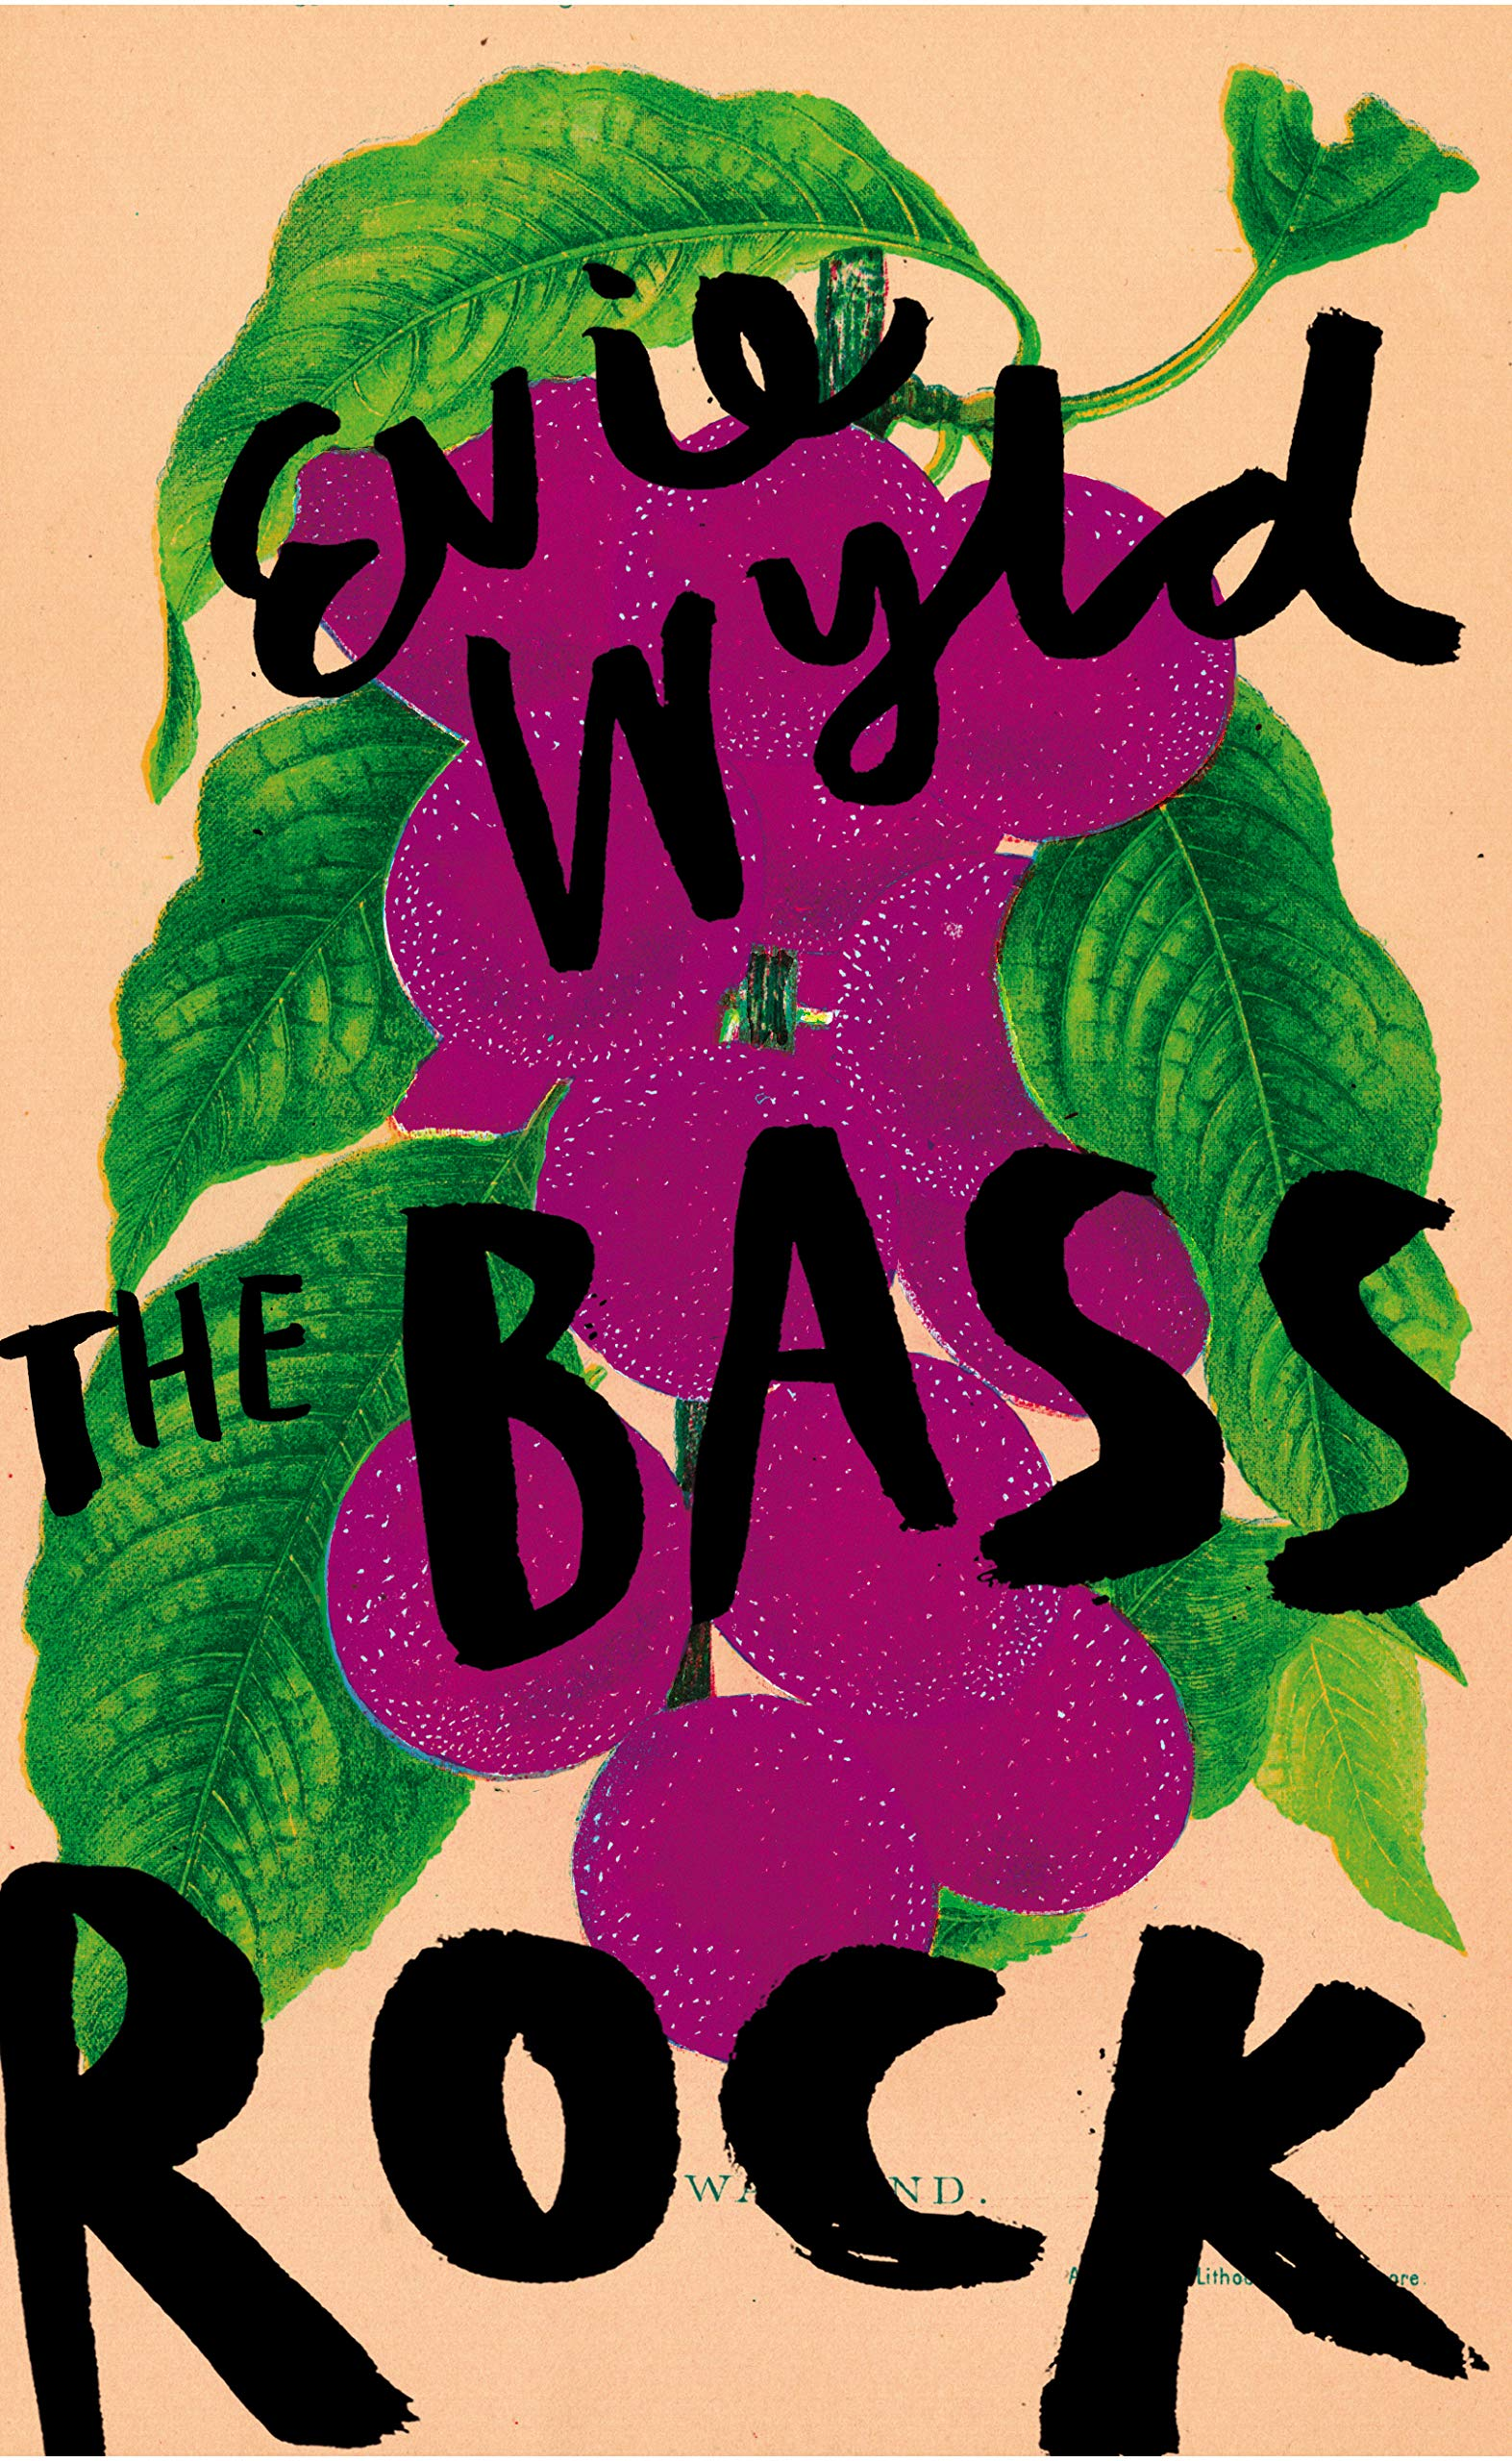 [PDF] [EPUB] The Bass Rock Download by Evie Wyld